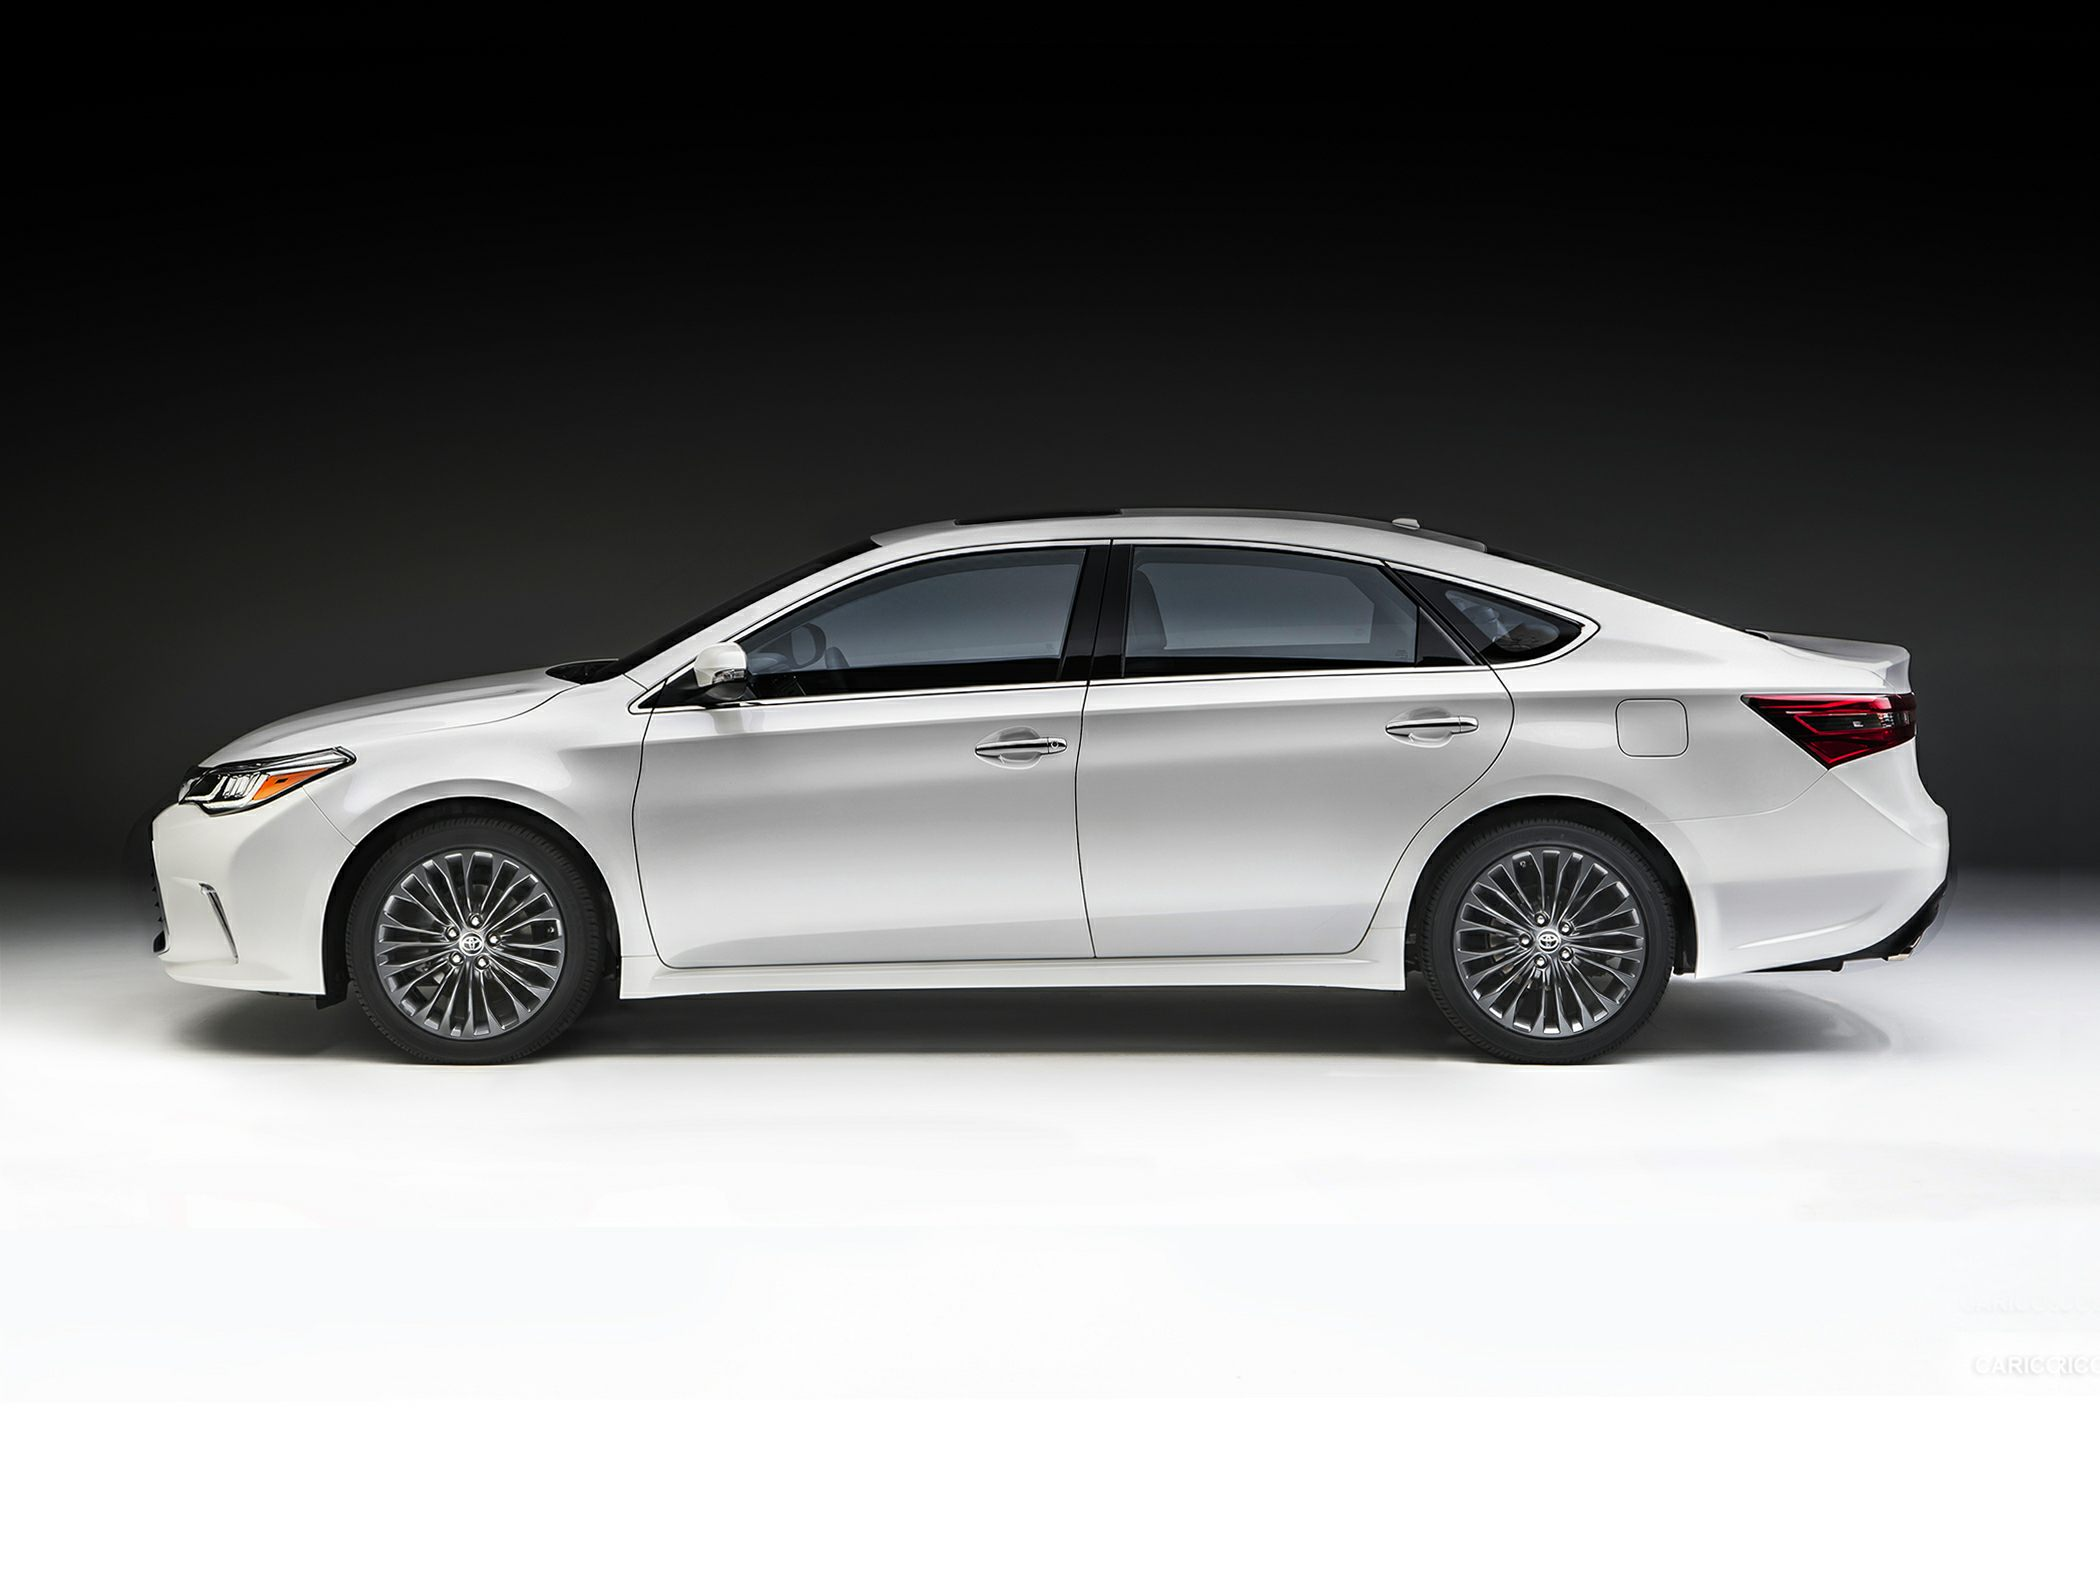 2017 Toyota Avalon Styles & Features Highlights